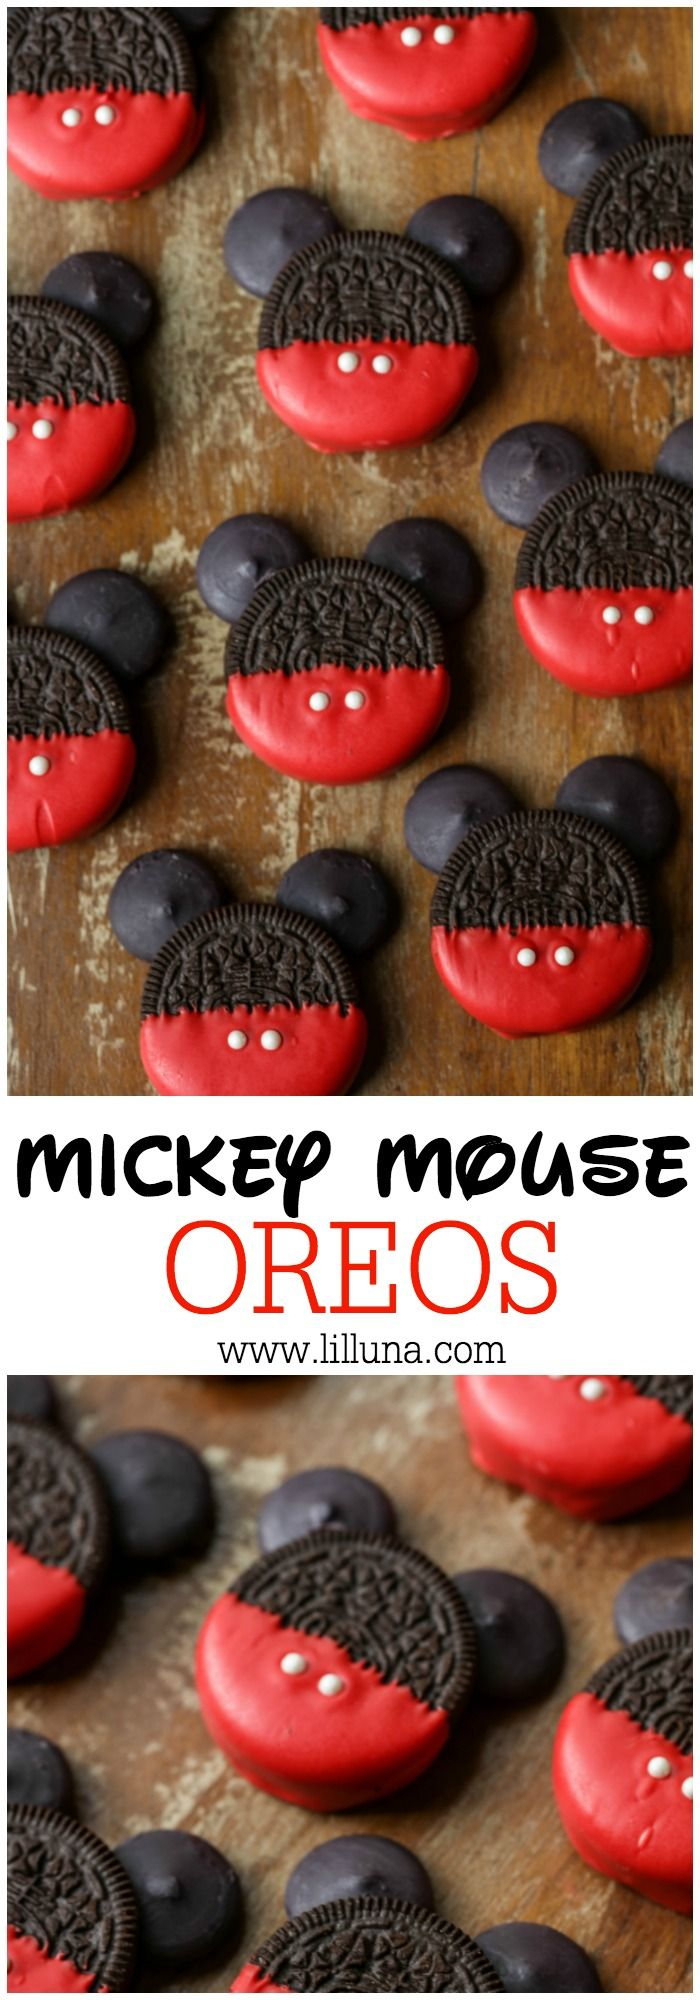 Mickey Mouse OREOS - a simple, cute and tasty treat to make with or for the kids for any occasion! (Holiday Bake With Kids)